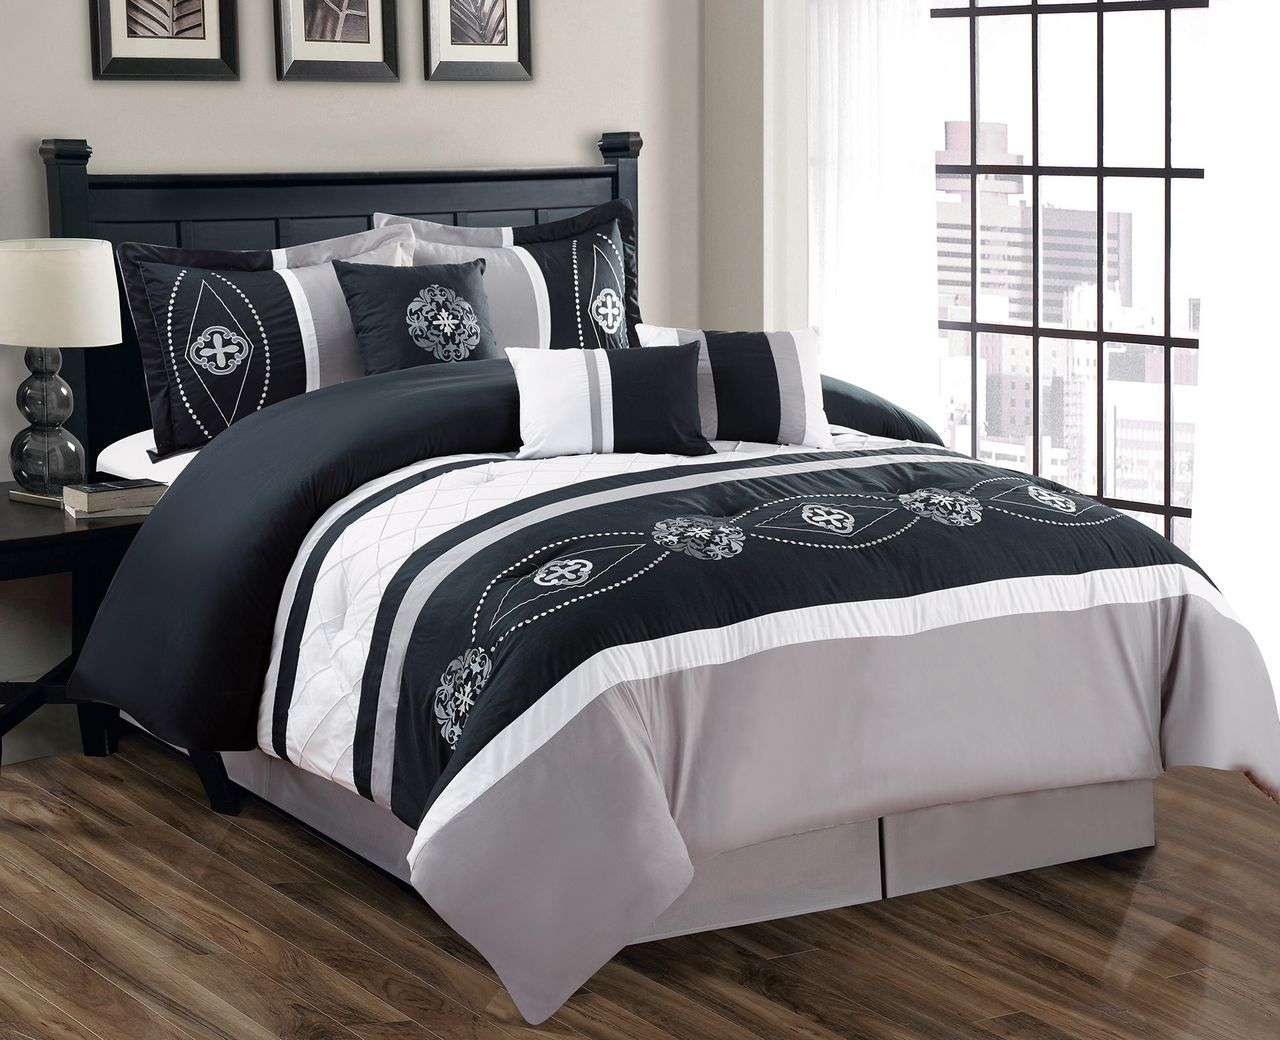 Gray Embroidered Comforter : Piece floral embroidered black gray white comforter set